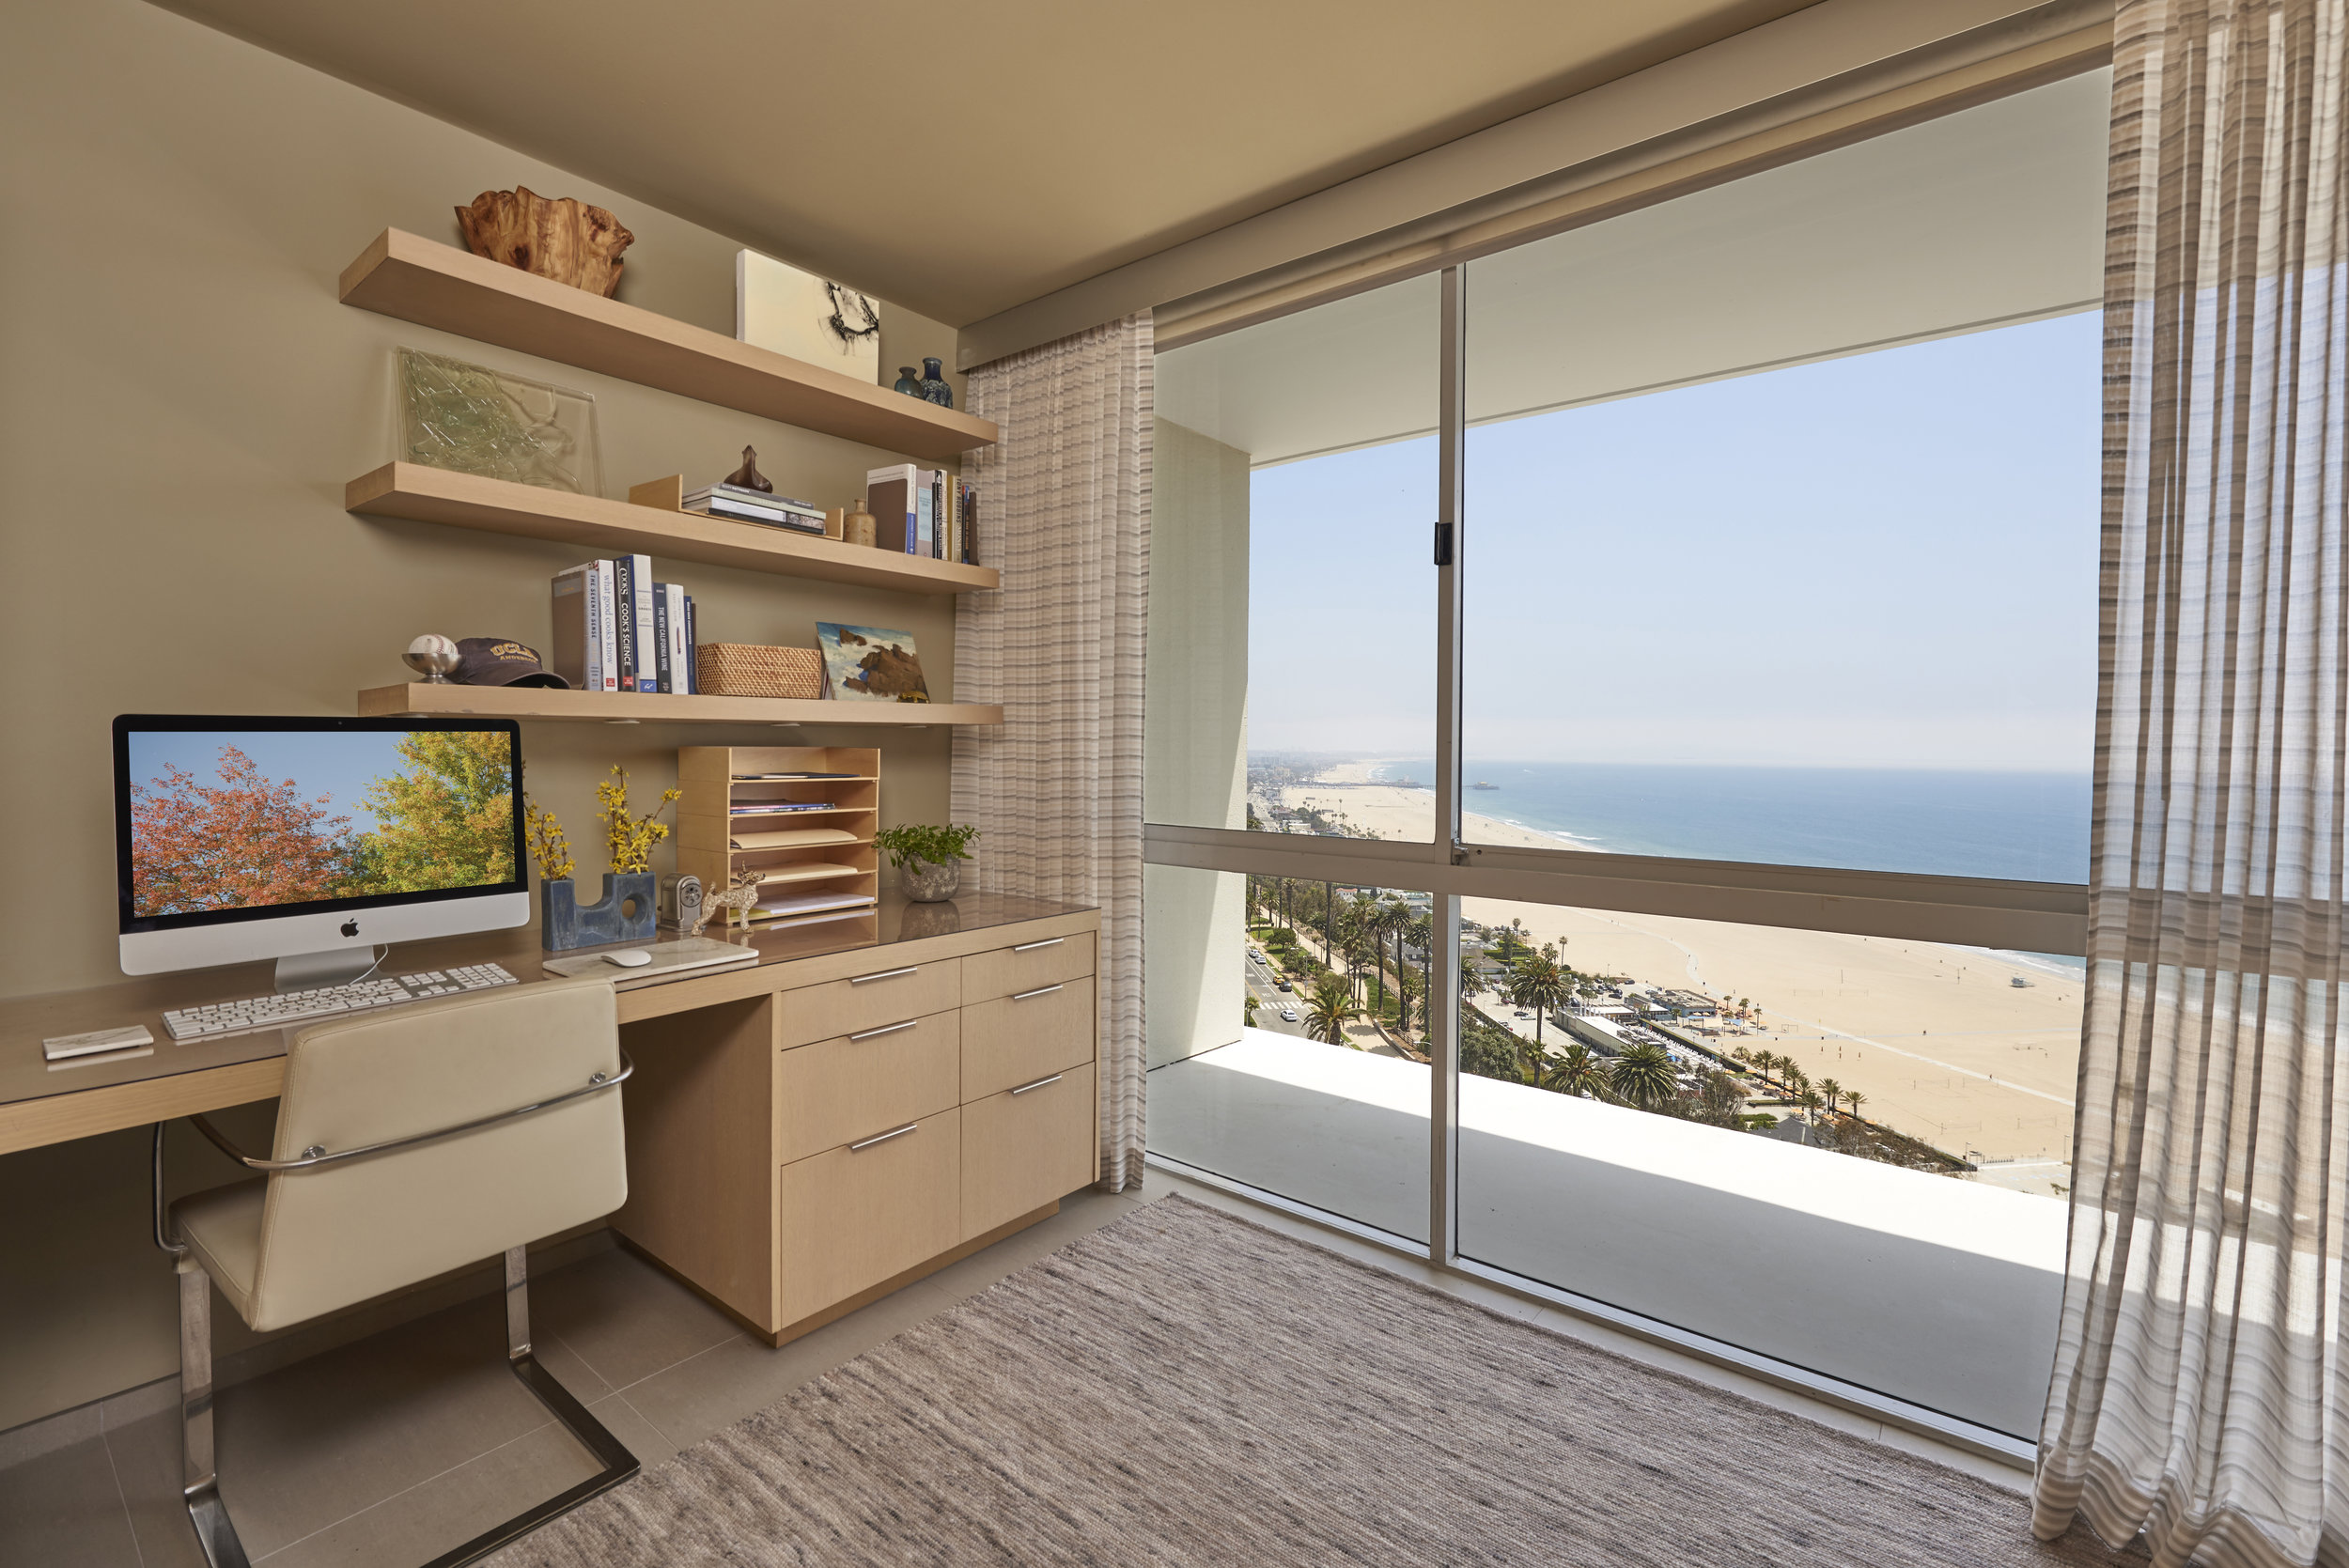 Floating shelves provide vertical storage in this compact home office featuring an impressive view of the Santa Monica shoreline.